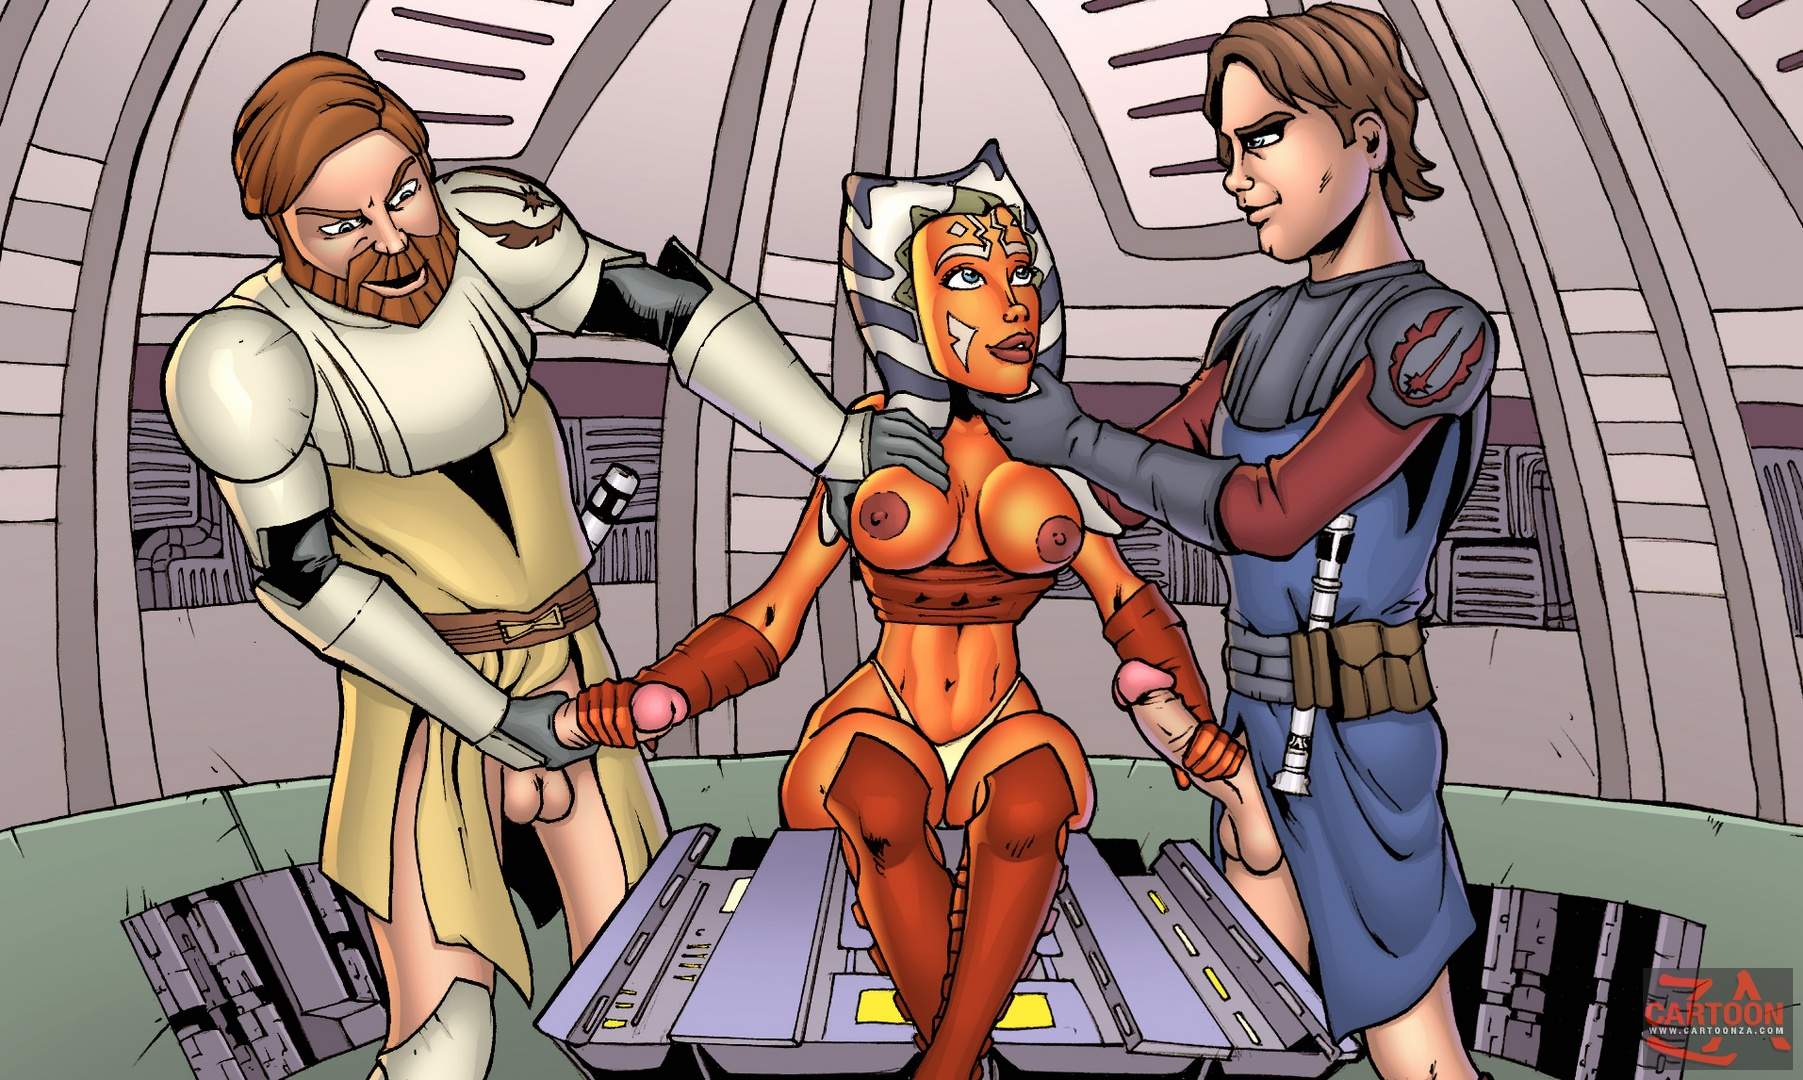 Goodcomix Star Wars - [Cartoonza] - Beautiful Ahsoka Tano xxx porno